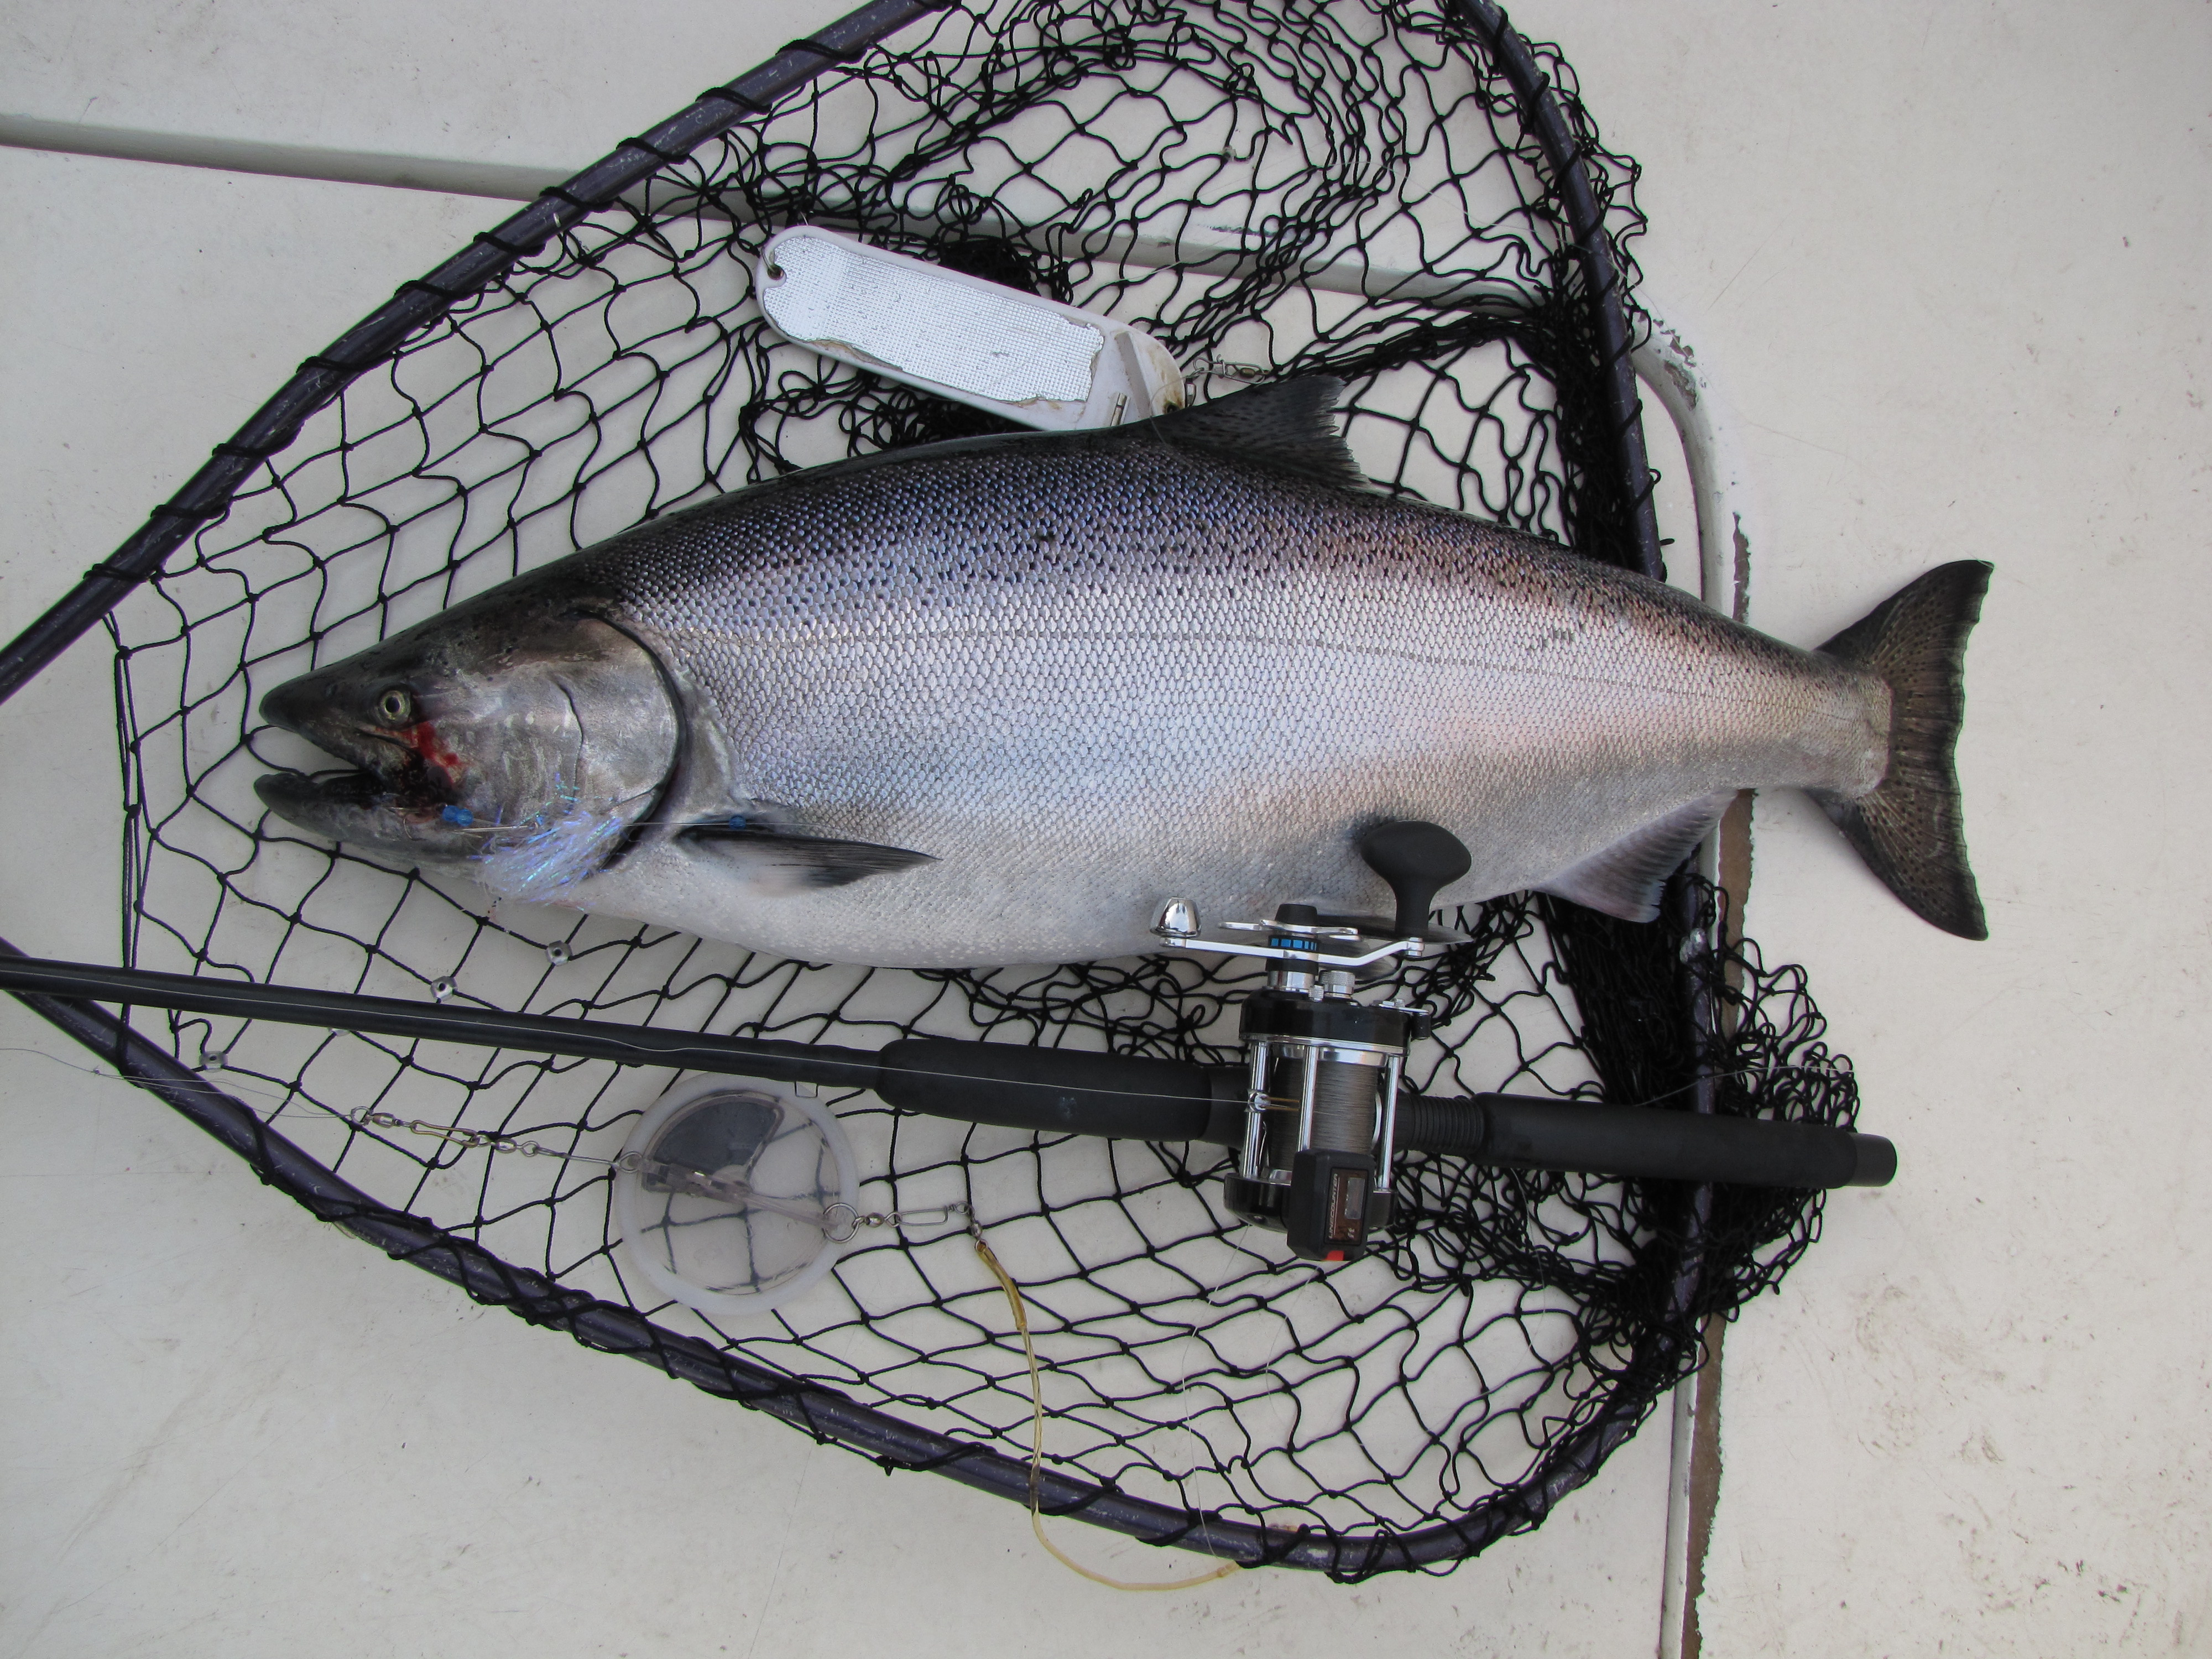 Lake ontariotrout and salmon fishing the abu garcia for Salmon fishing lake ontario